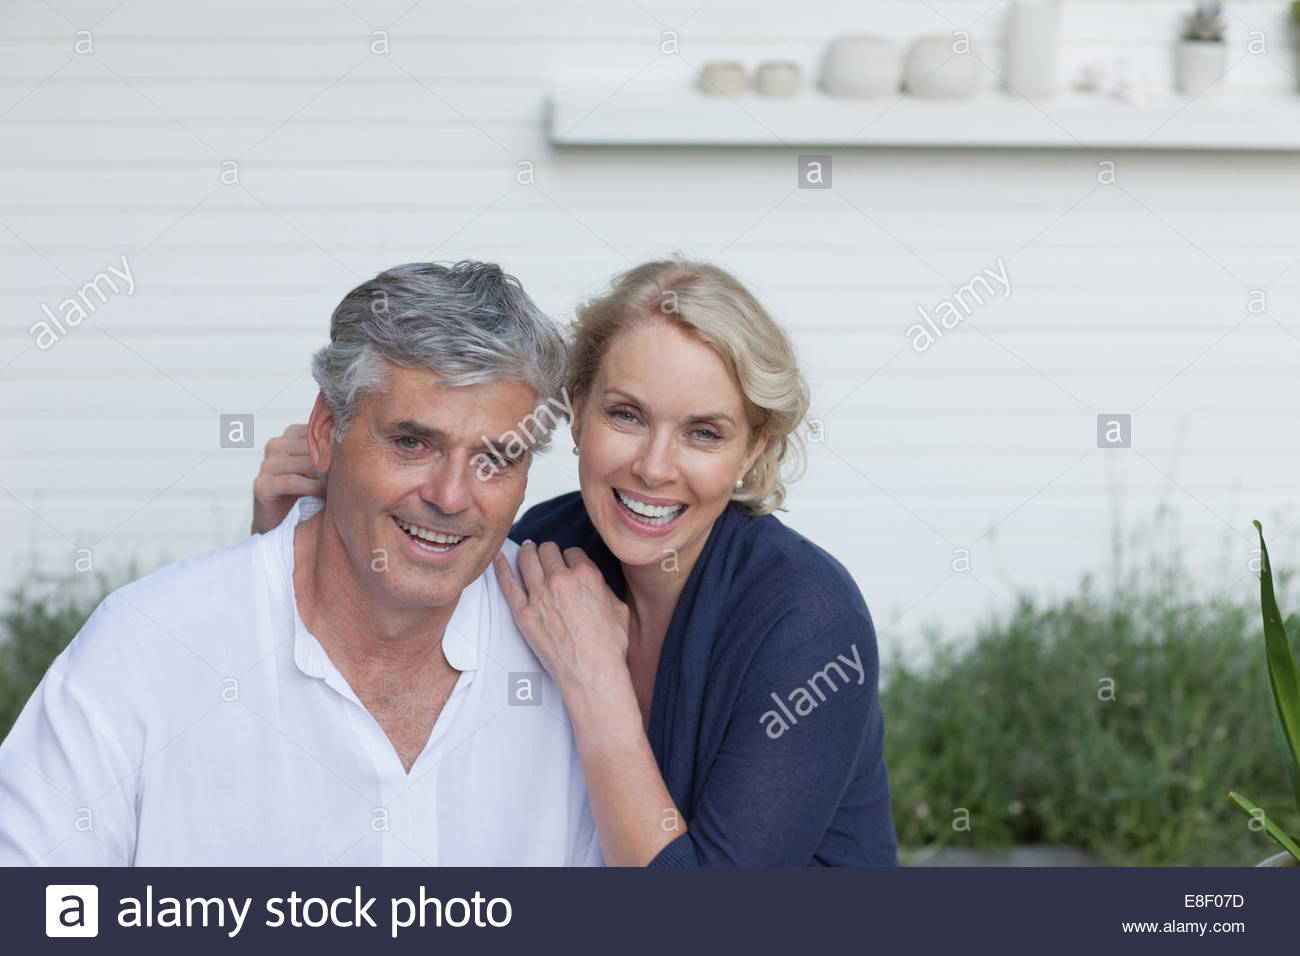 Smiling couple hugging outdoors Photo Stock